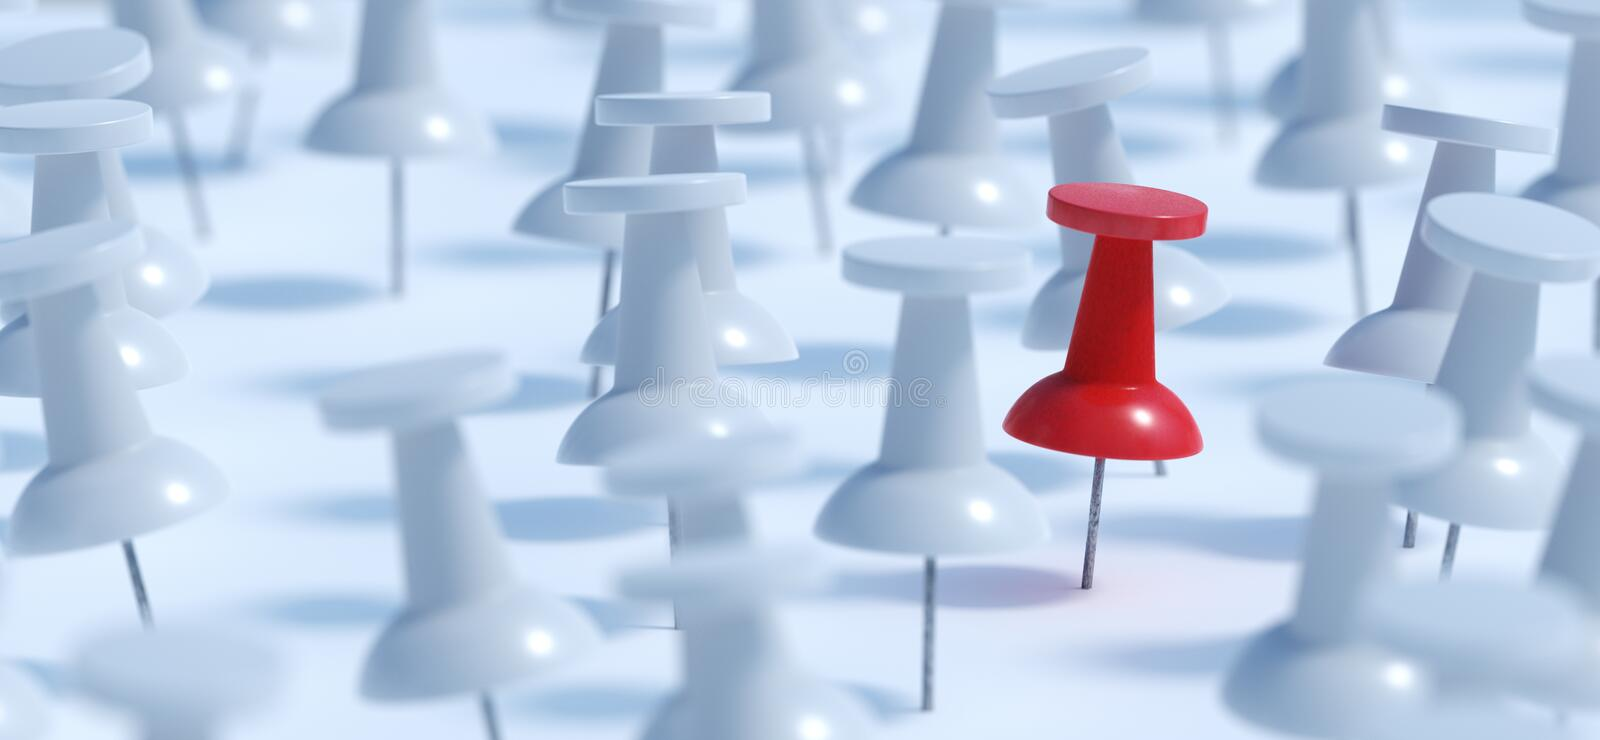 Difference concept. Red pushpin or thumbtack and many white ones. 3D rendered illustration. Difference concept. Red pushpin or thumbtack and many white ones. 3D vector illustration